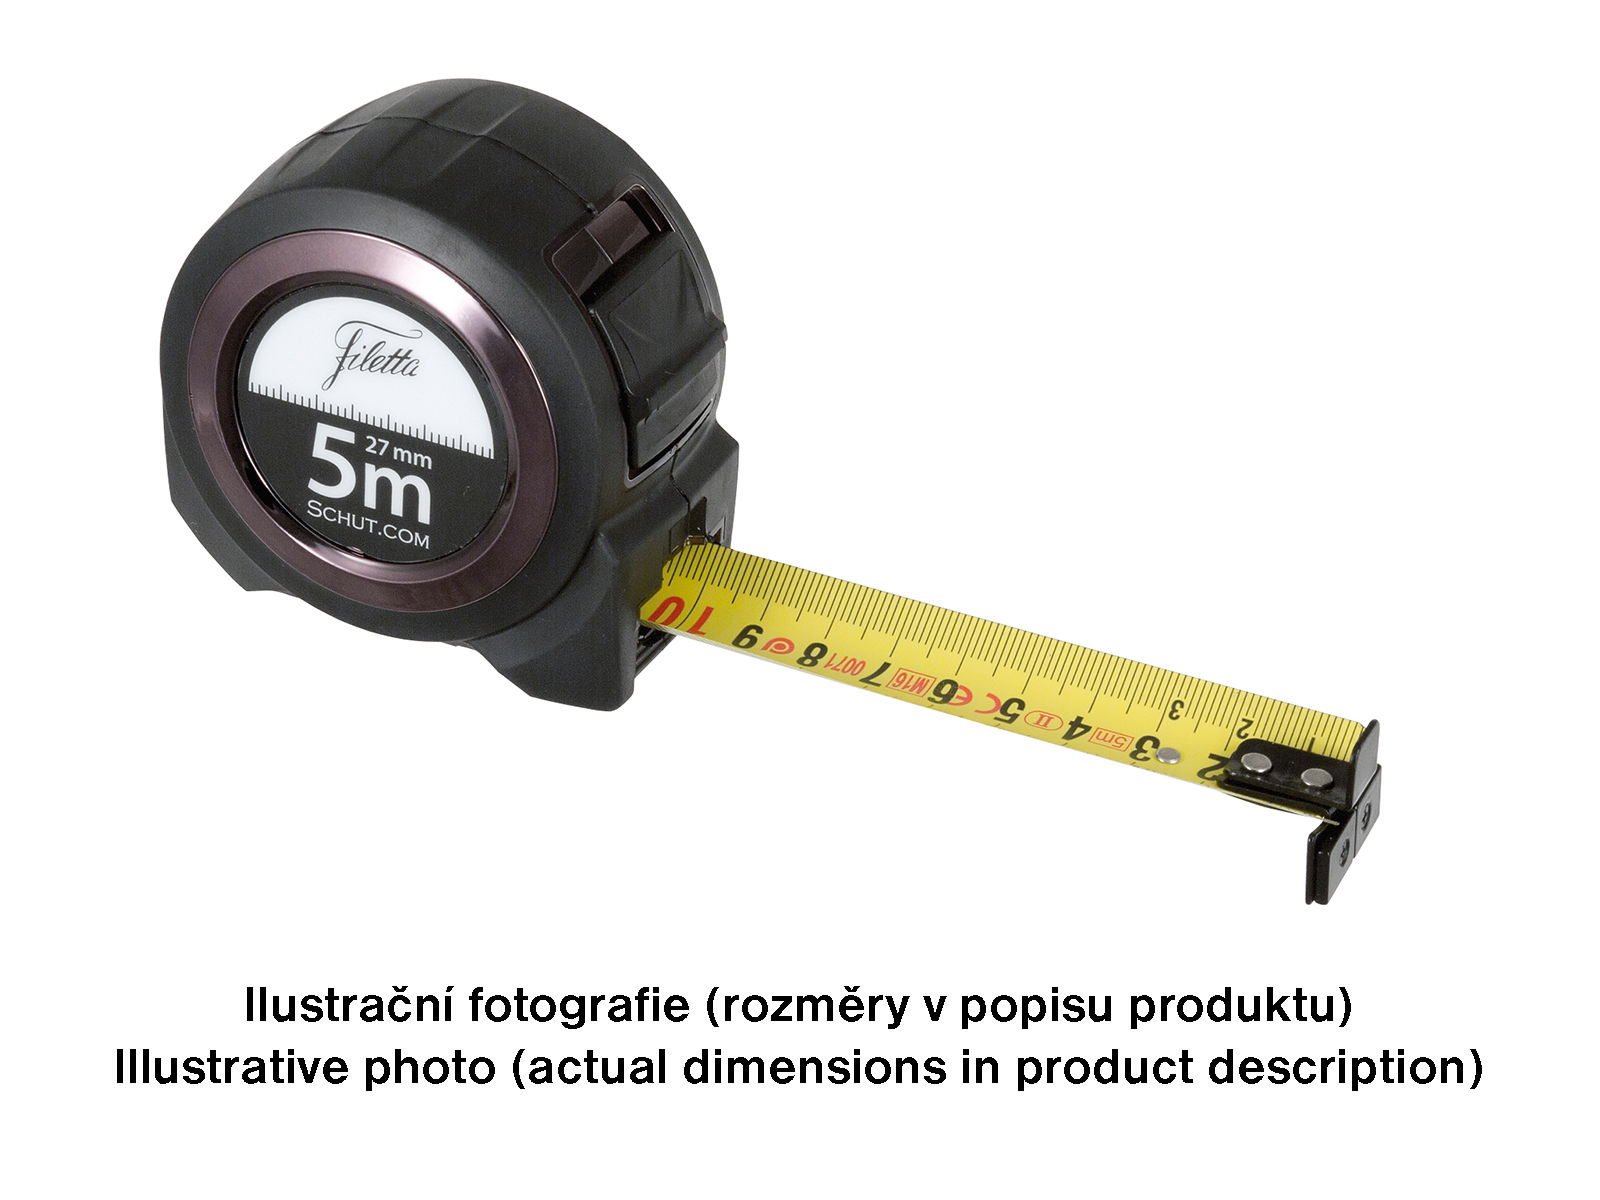 Professional double-sided precision tape 10 m / 27 mm